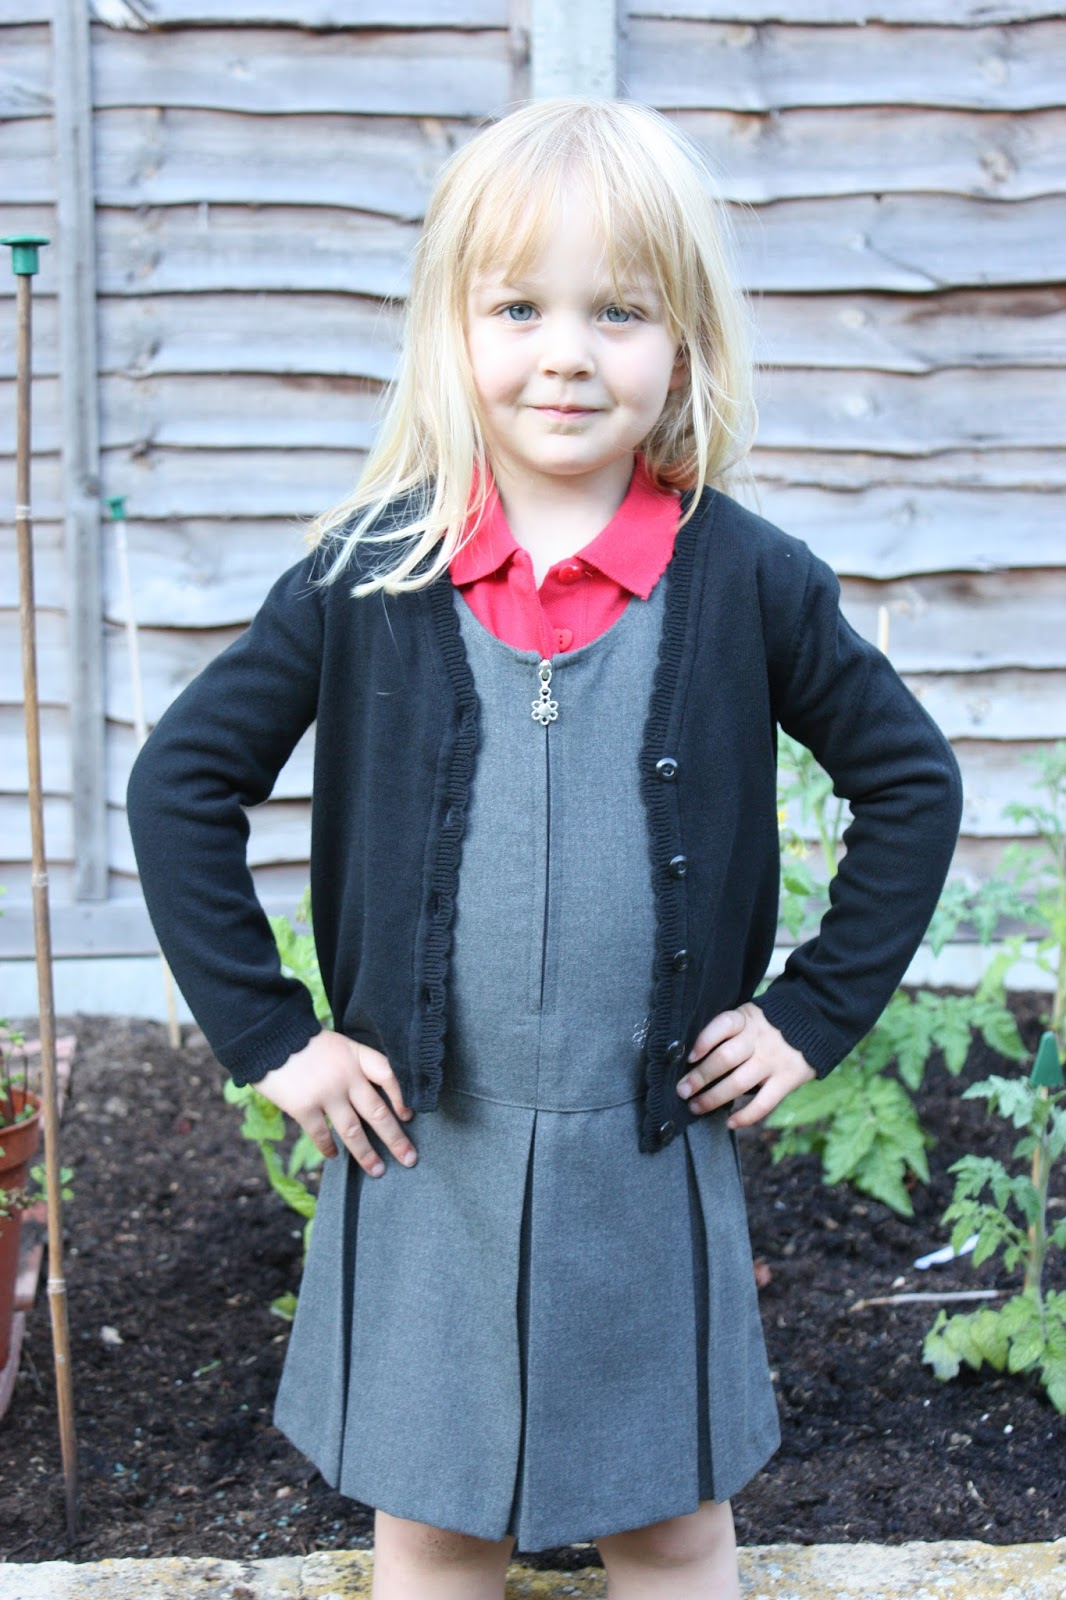 32c58e562e ... generic school clothes that you don't mind risking against the daily  trials of a 4 year old is considerably cheaper than a wardrobe of 'other'  clothes.